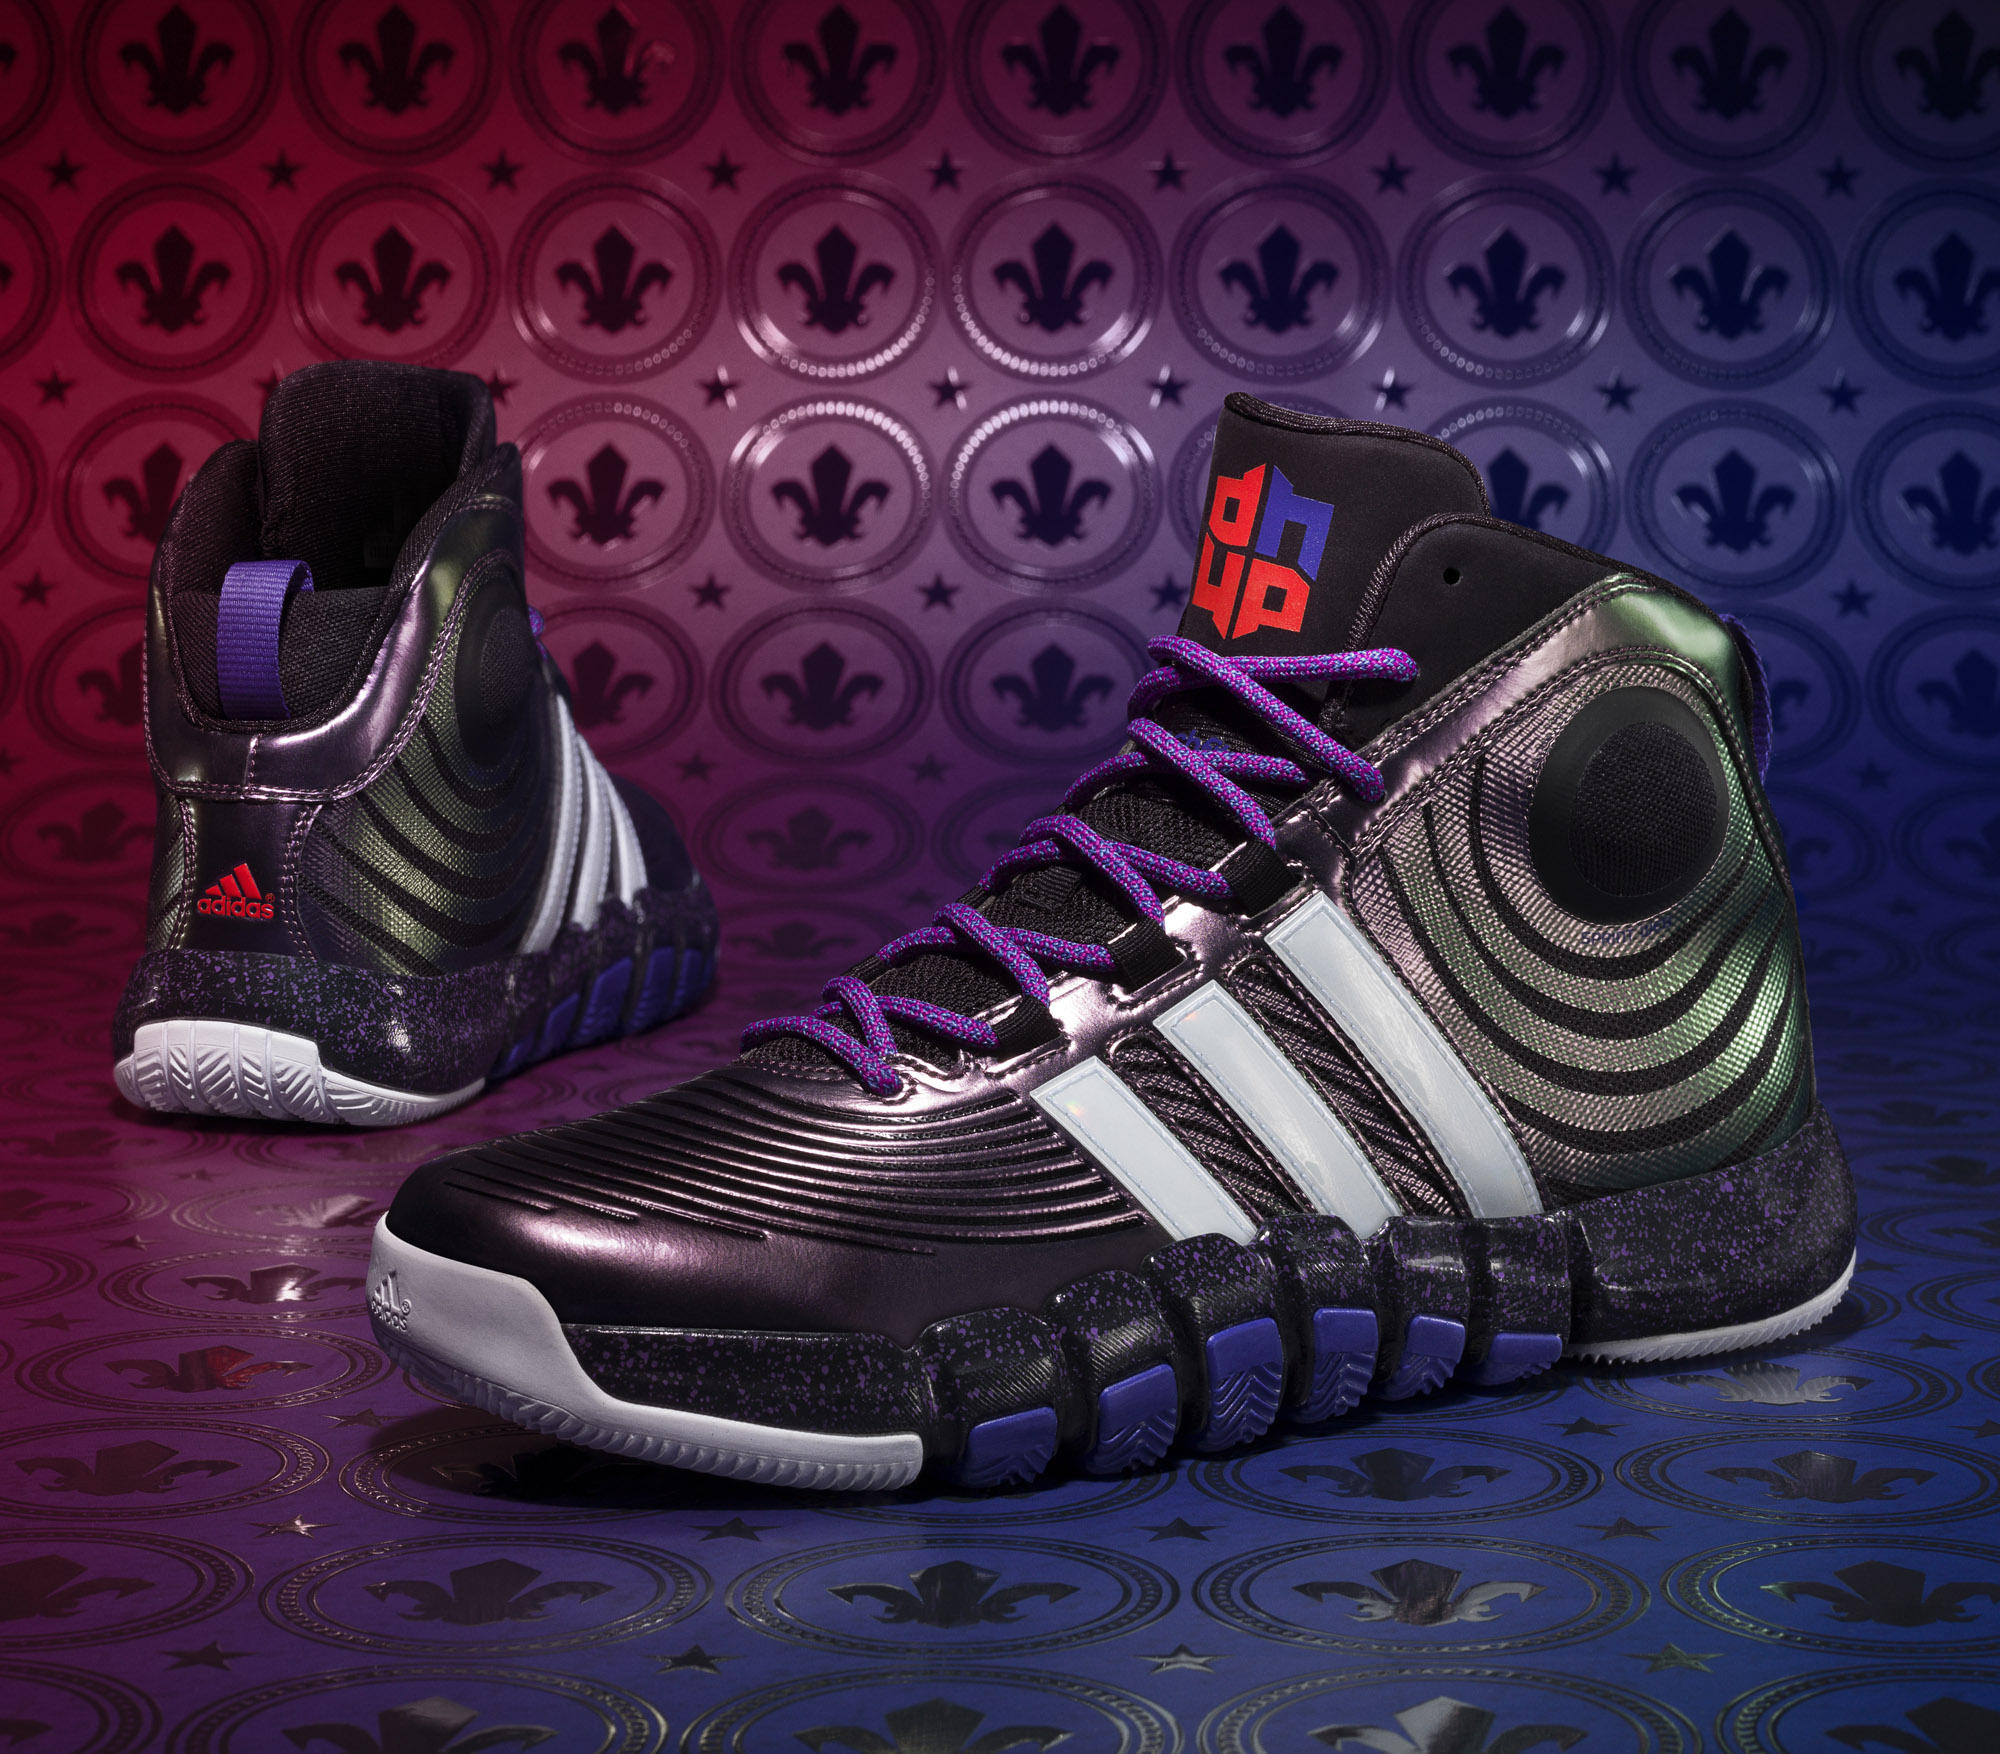 adidas-basketball-2014-nba-all-star-collection-8